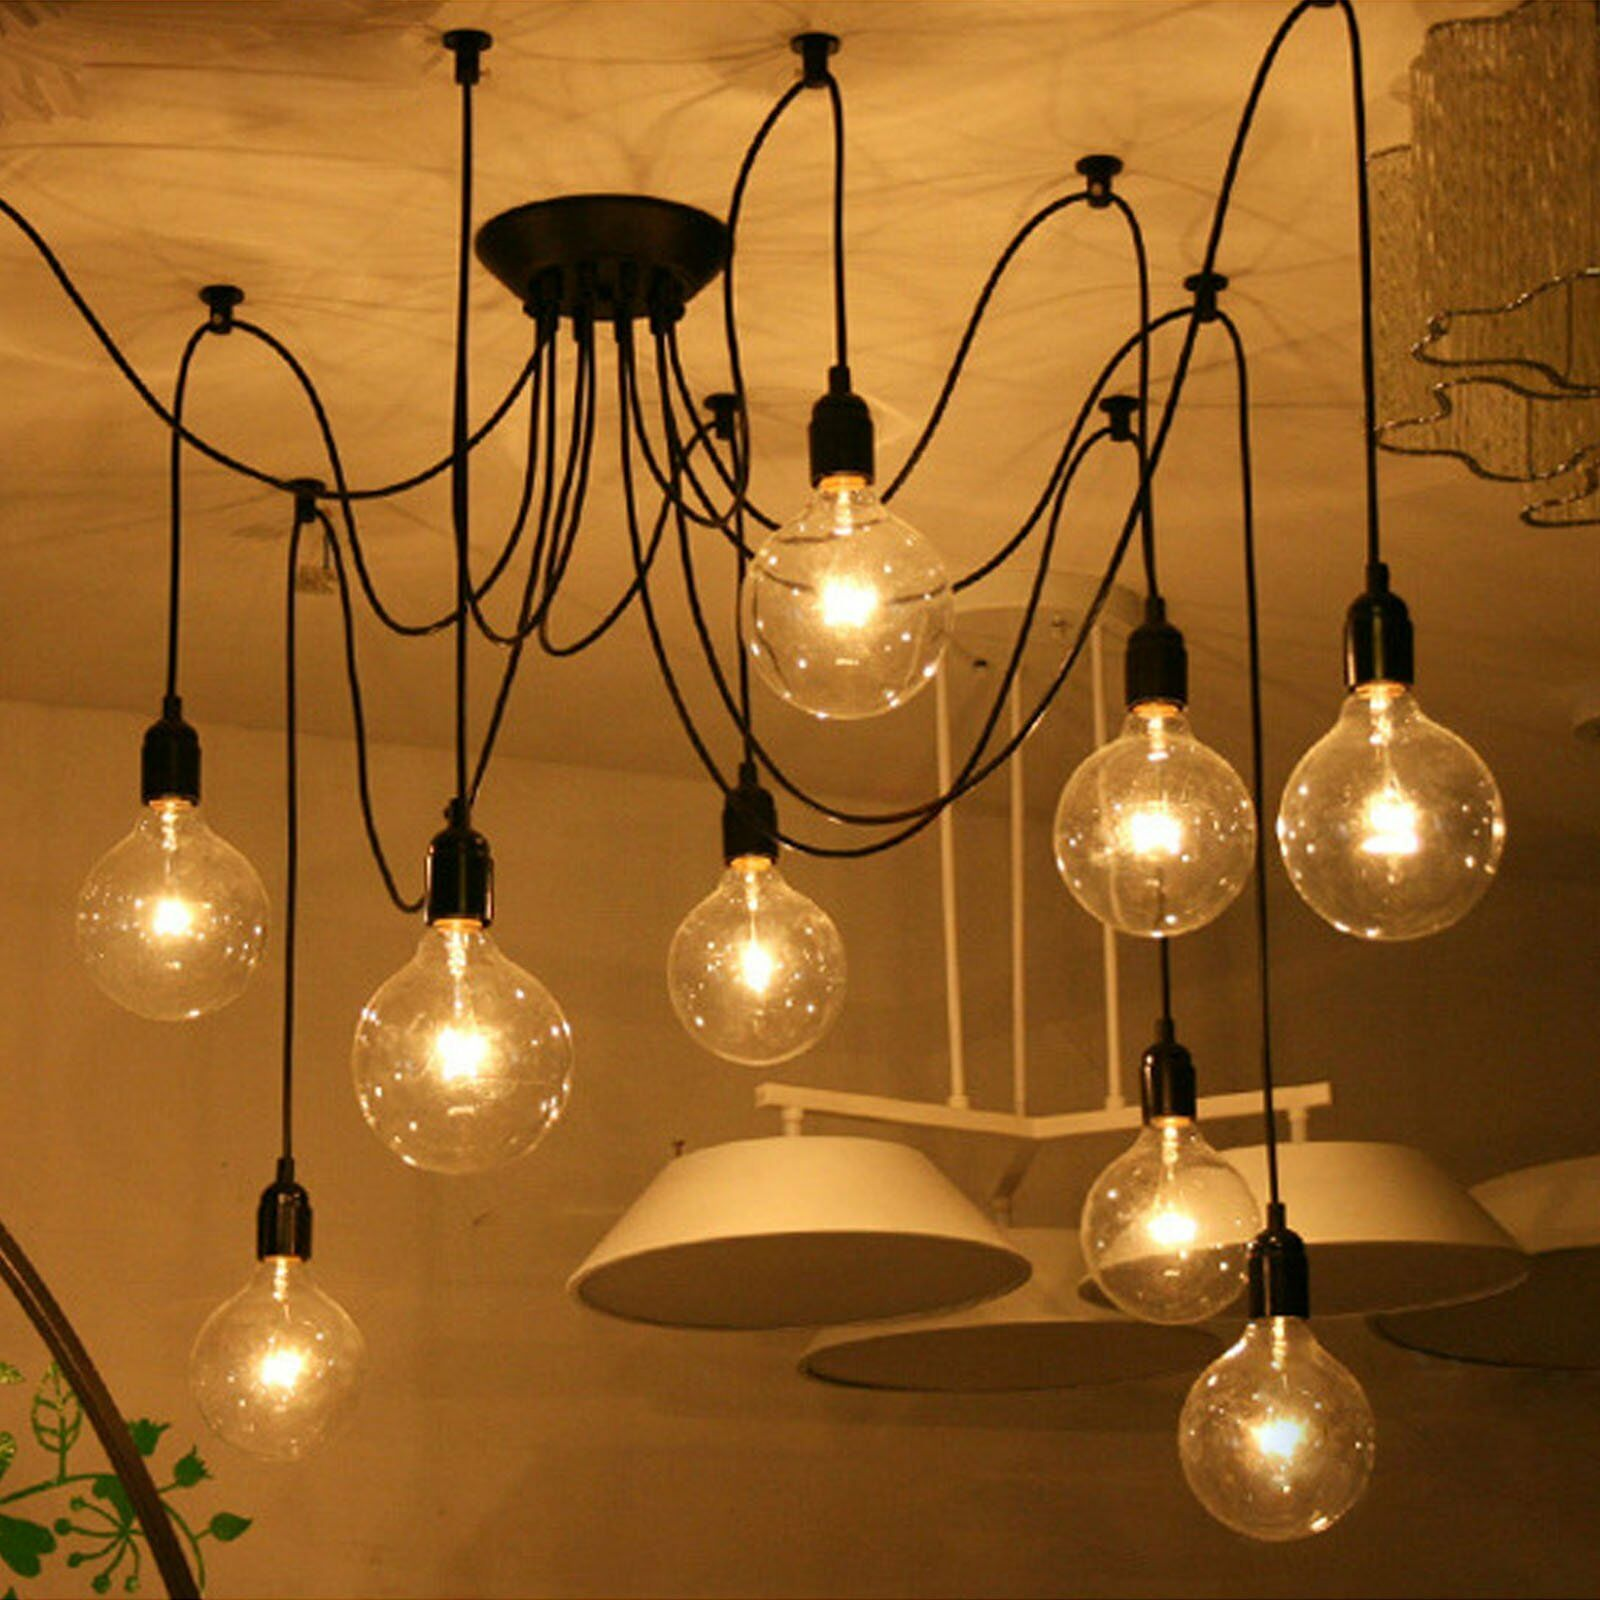 lamp black chandelier dome inspiring light lights ceiling extraordinary pendant lighting industrial